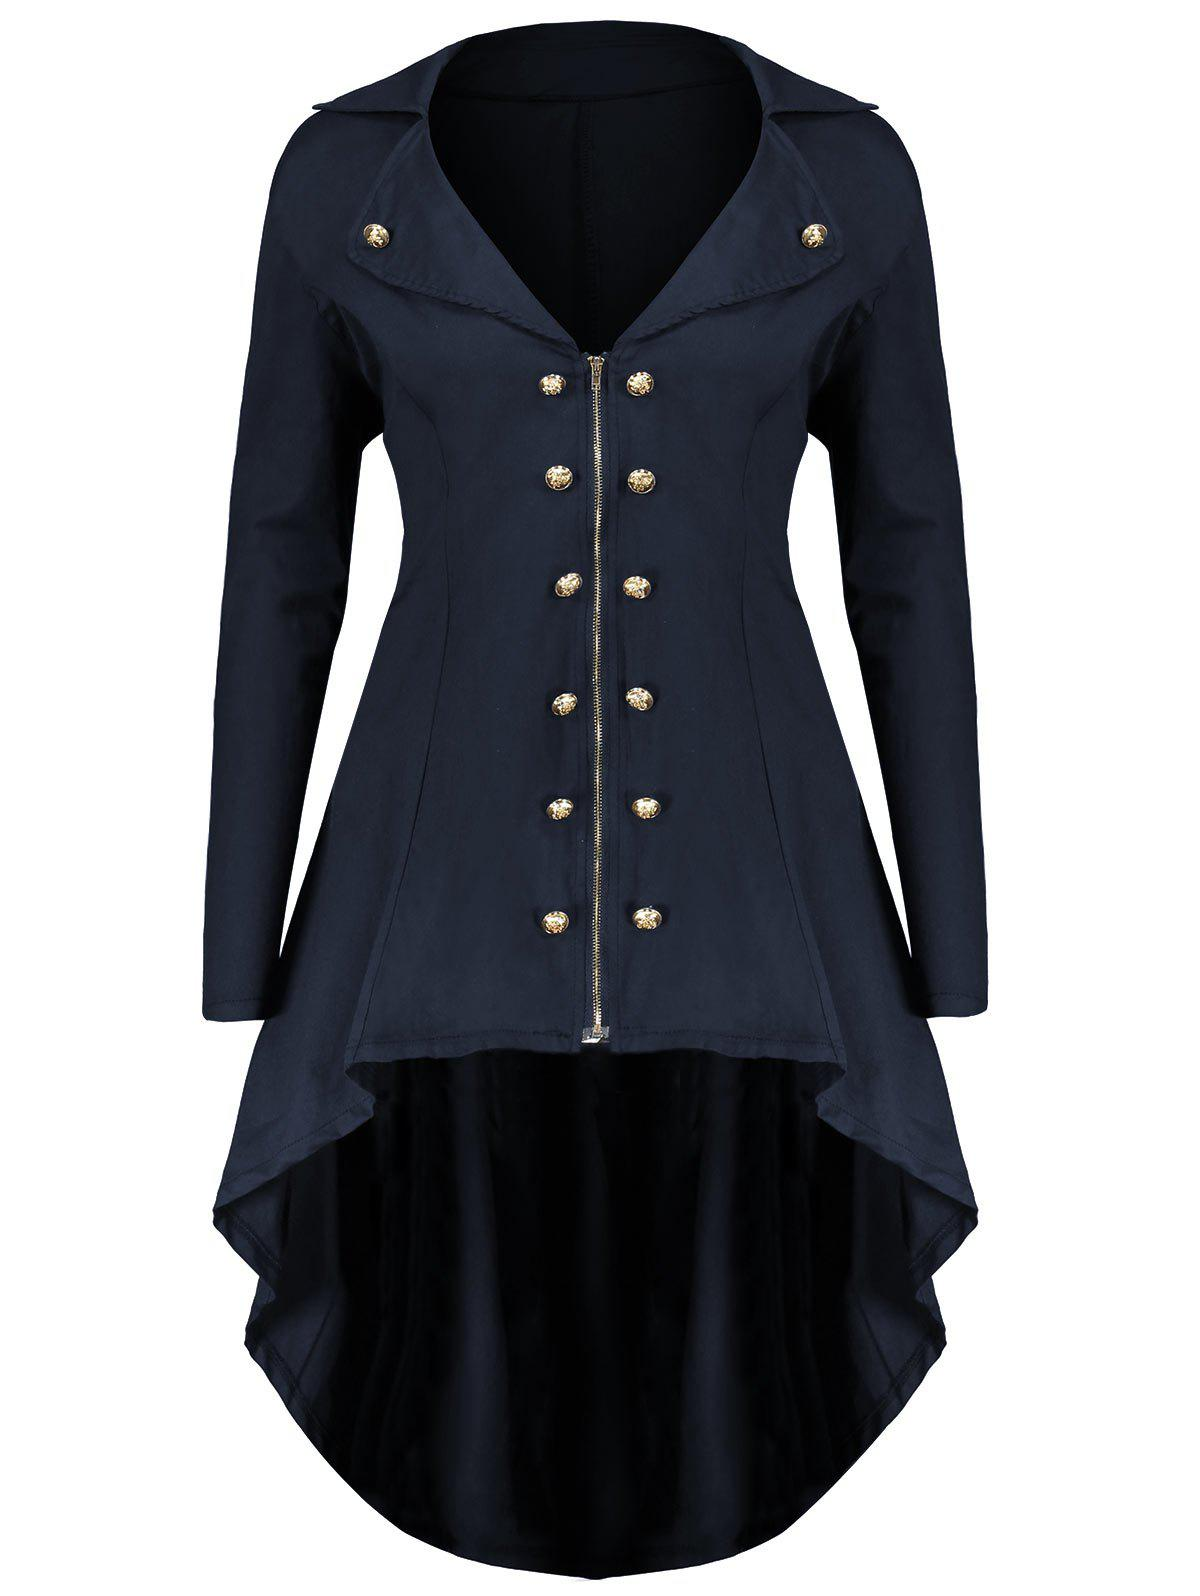 Lapel Double Breast Plus Size High Low CoatWOMEN<br><br>Size: 3XL; Color: BLUE; Clothes Type: Others; Material: Polyester,Spandex; Type: Asymmetric Length; Shirt Length: Long; Sleeve Length: Full; Collar: Lapel; Pattern Type: Solid; Embellishment: Button,Zippers; Style: Fashion; Season: Fall,Winter; Weight: 0.5200kg; Package Contents: 1 x Coat;